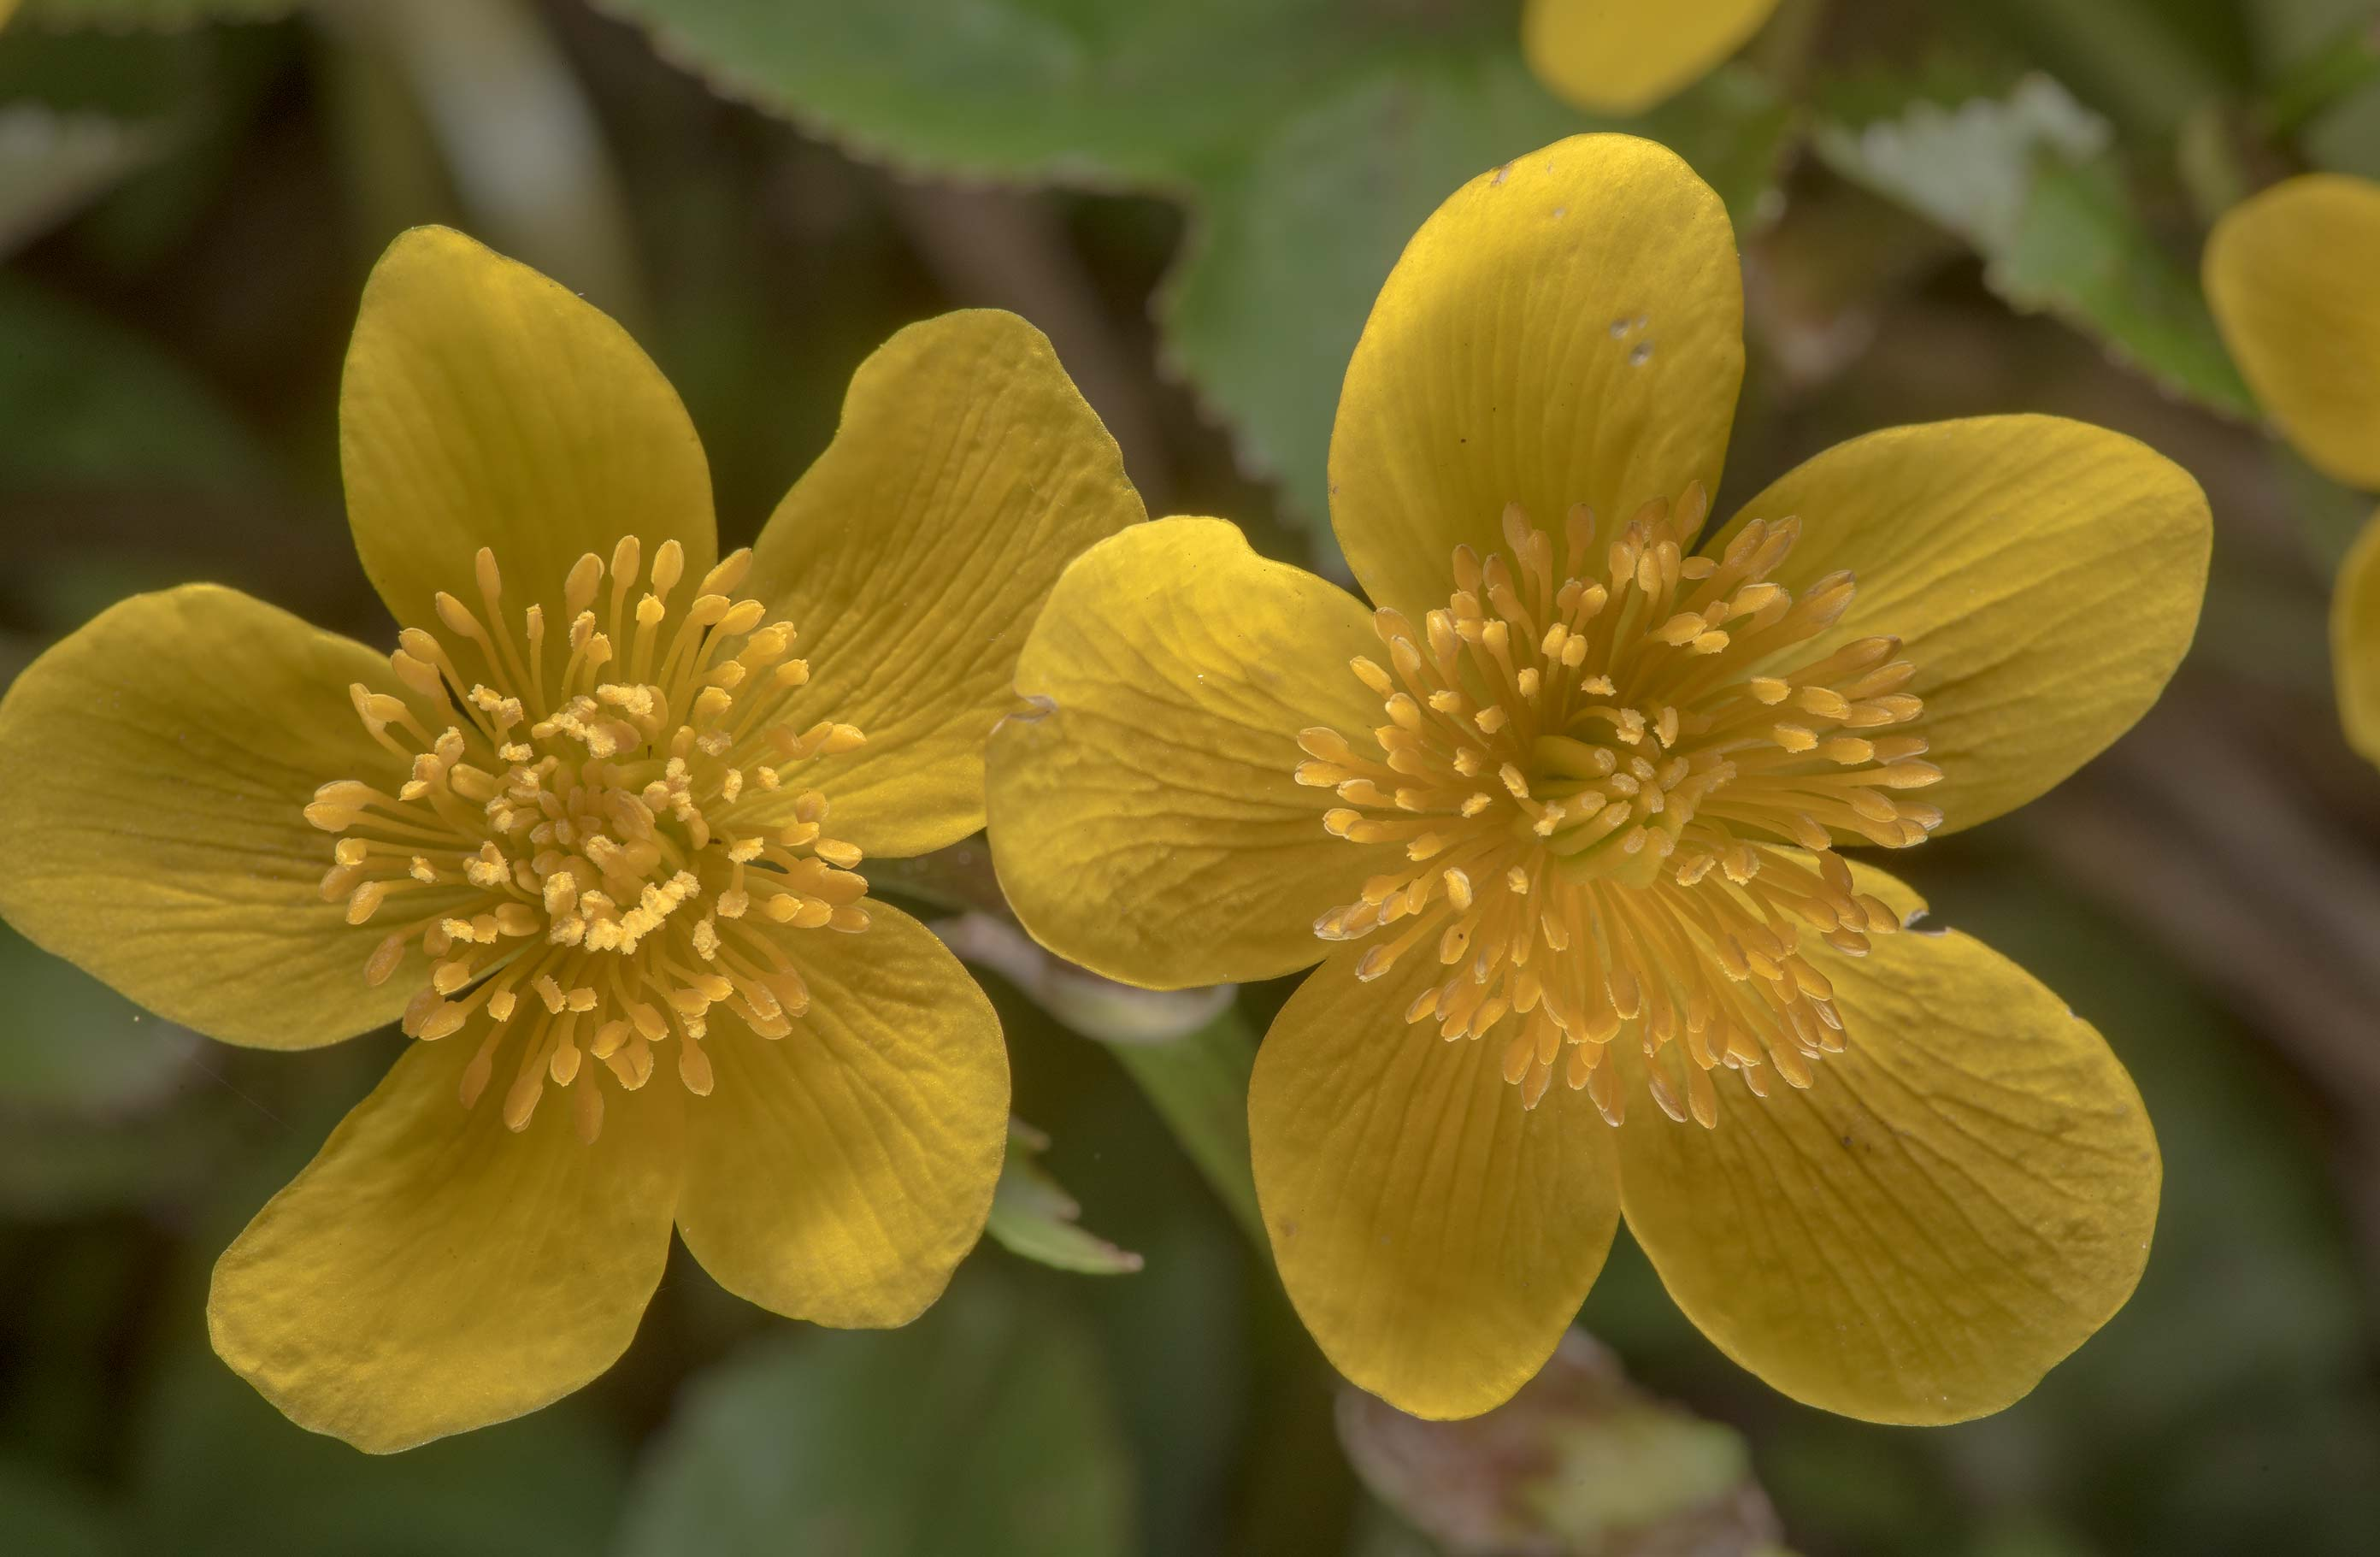 Flowers of marsh marigold (kingcup, Caltha...south from St.Petersburg. Russia